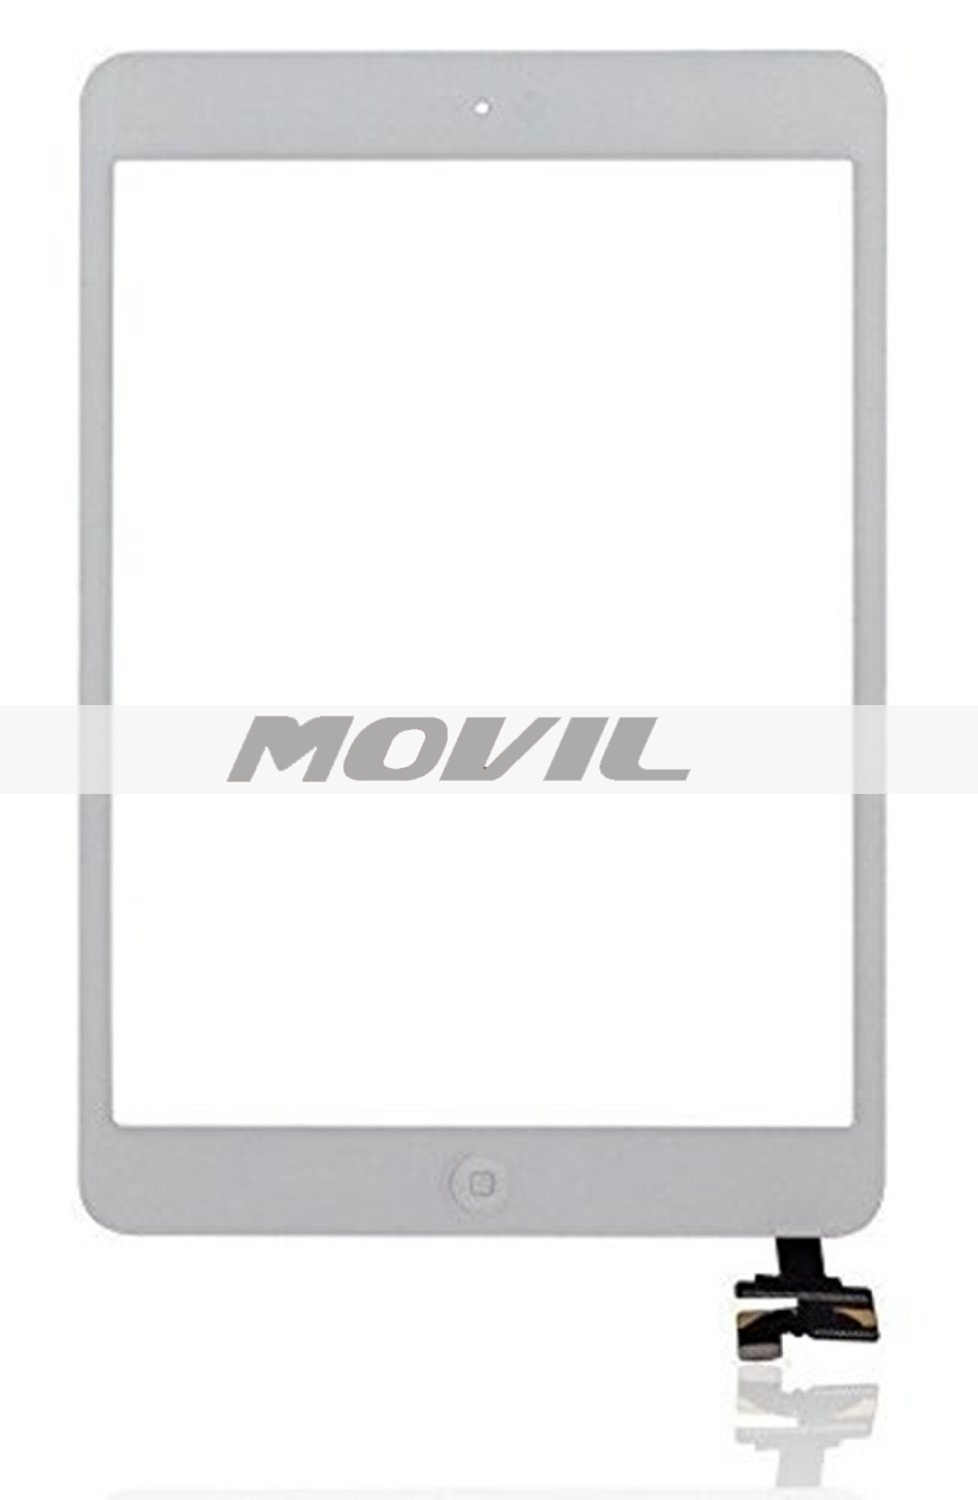 iPad Mini 2 Touch Panel + Home Button + IC + Adhesive Universal Buying(TM) Touch Screen Digitizer Outer Glass Panel Complete Assembly Replacement for iPad Mini 2 - White